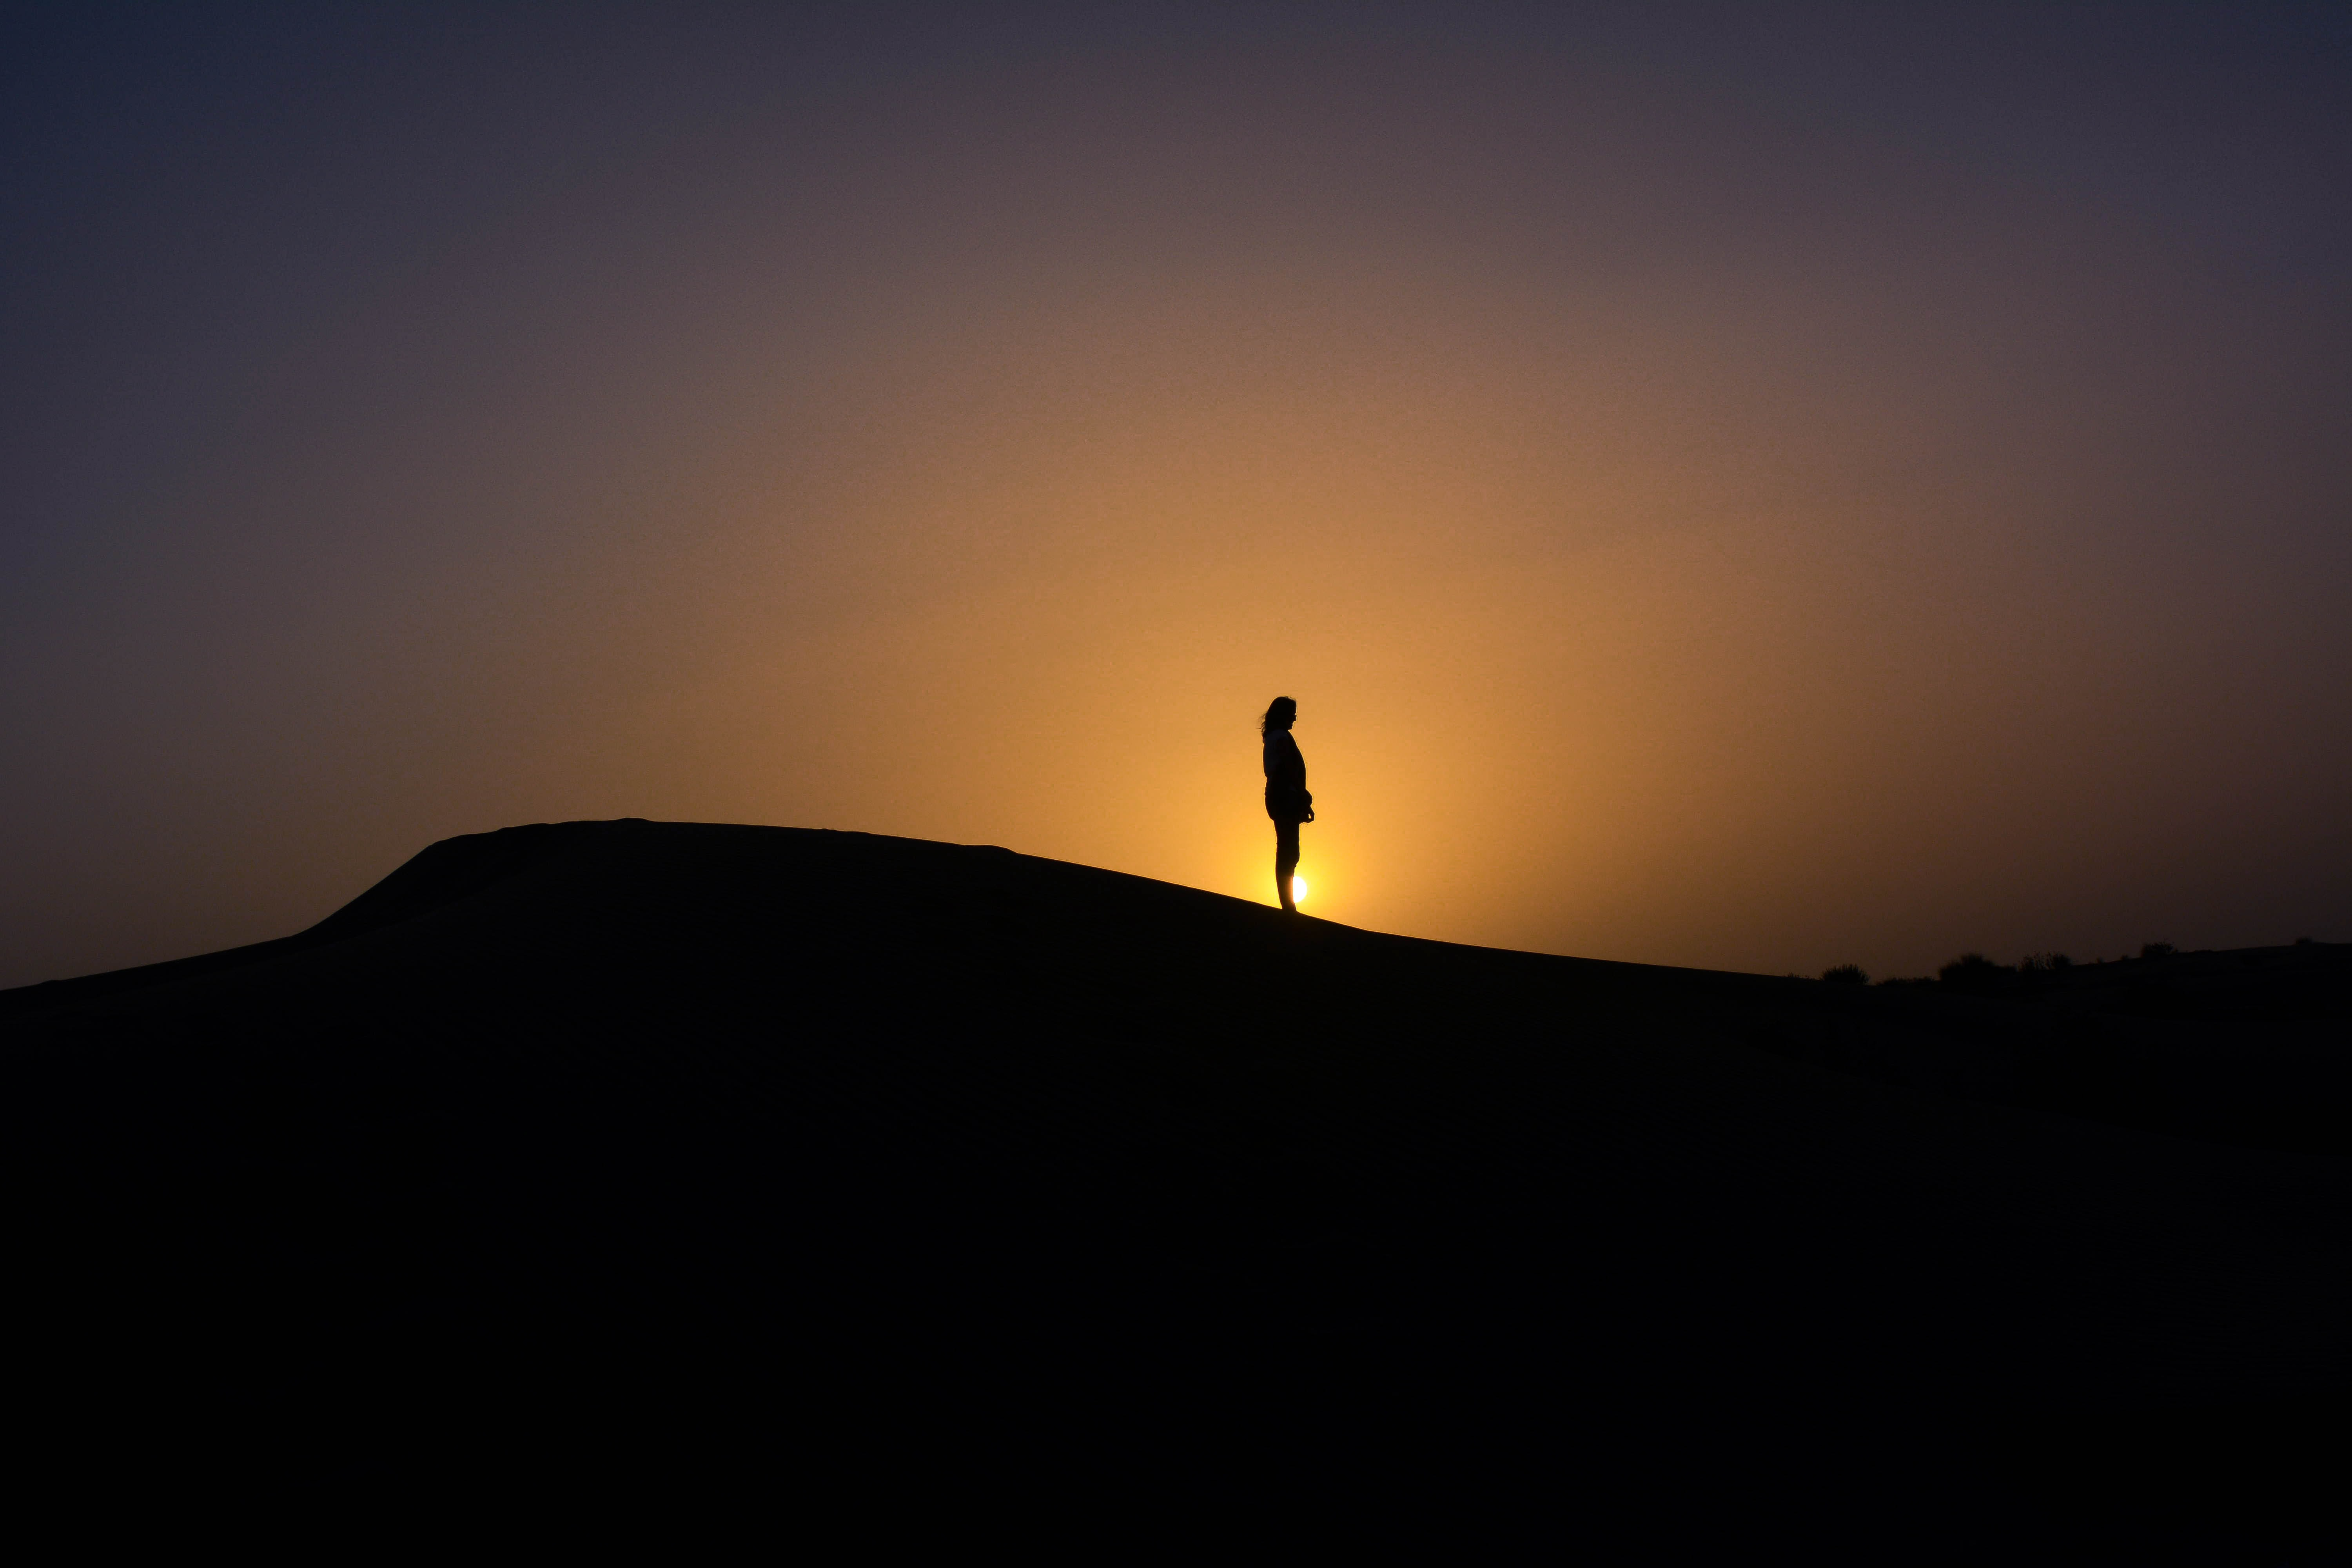 silhouette of person standing on mountain with sunset sun